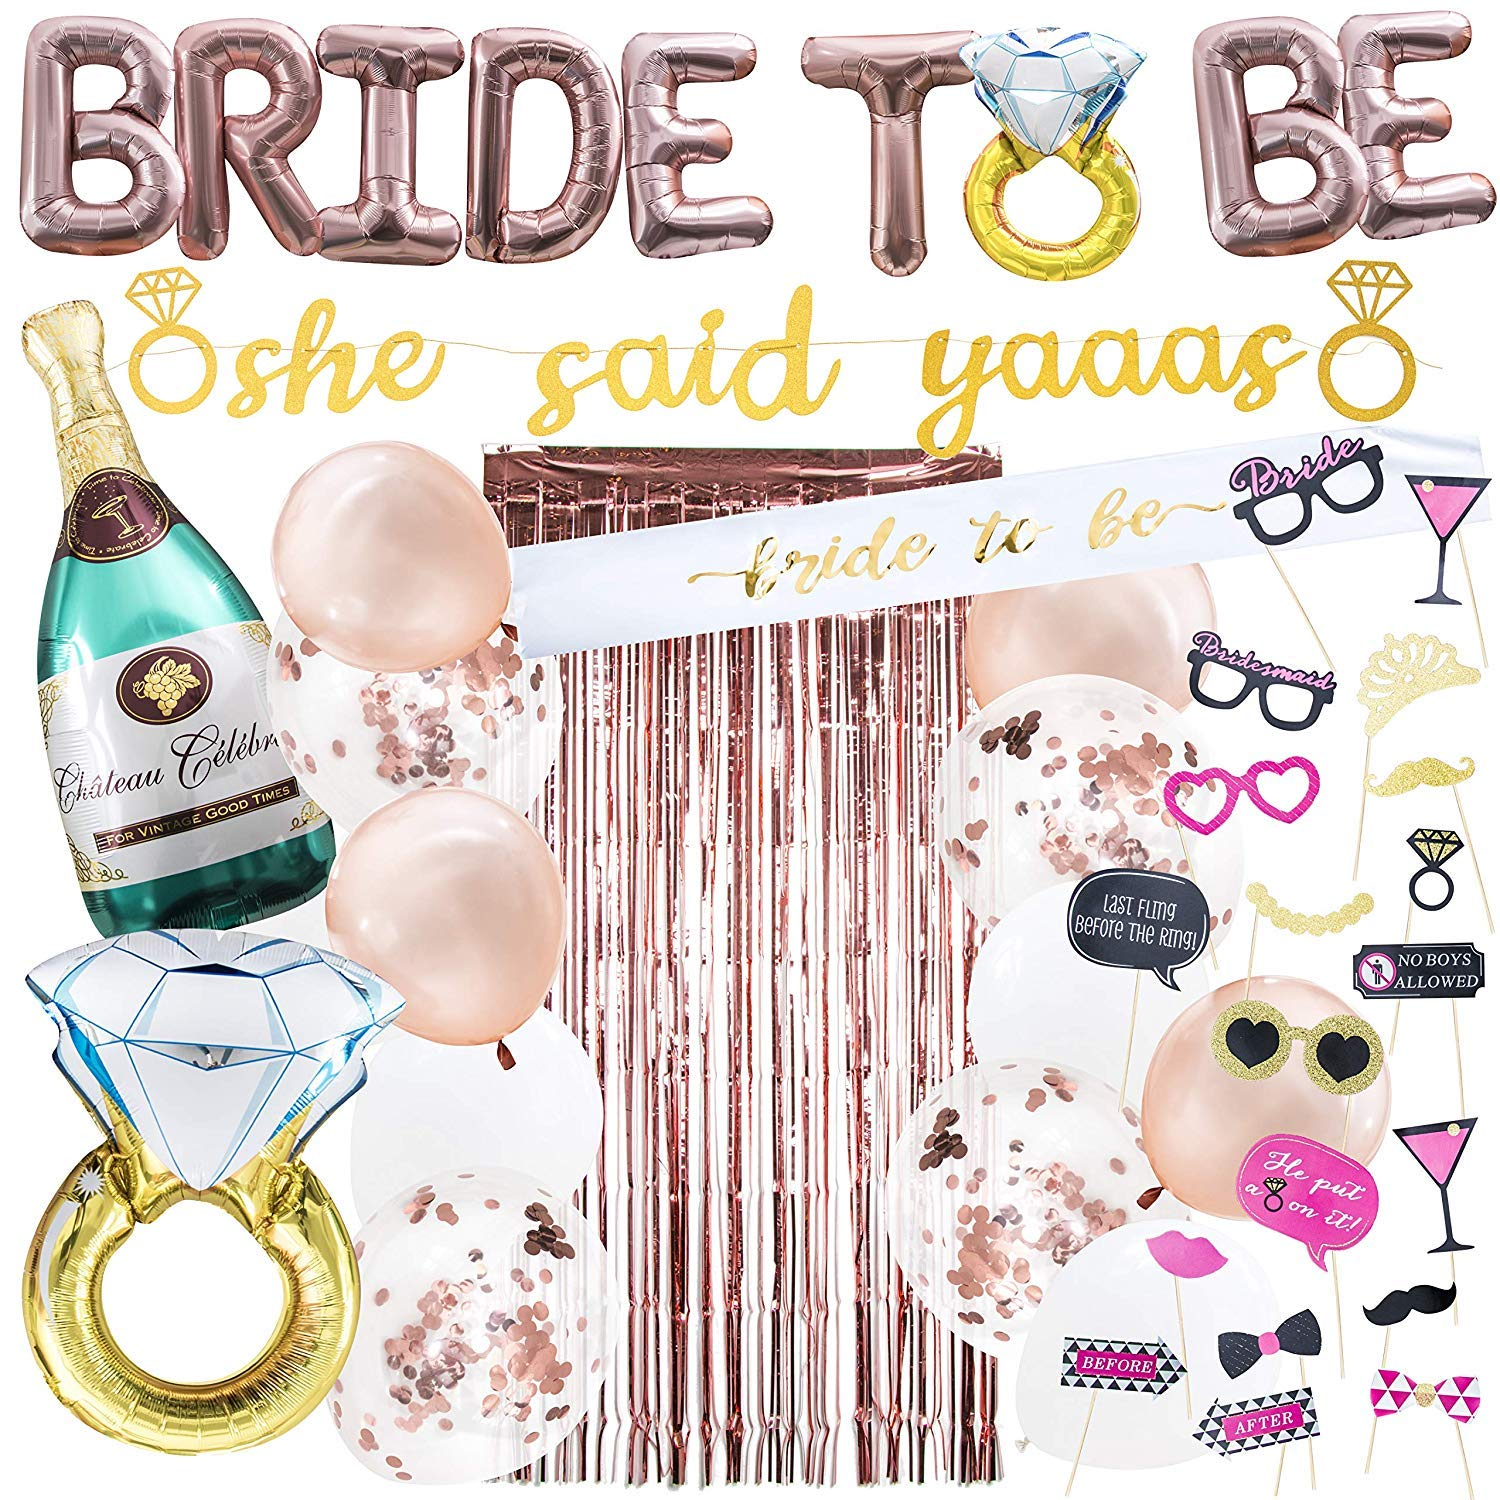 Rose Gold Bachelorette Party Decorations Kit I Bridal Party Decor I She Said Yaaas Banner, Bride to be Balloon, Engagement Ring Balloon, Rose Gold Foil Curtain + Girls Night Photo Booth Props by PineapplePartyShop